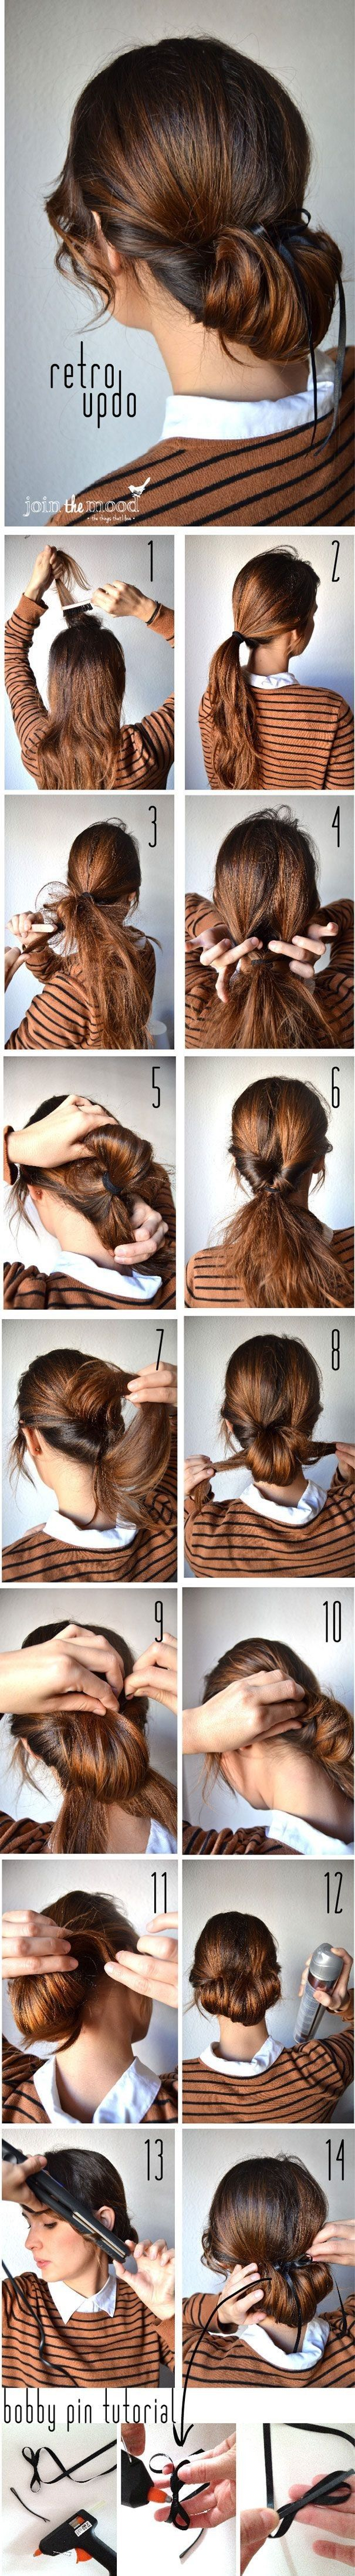 hair bun styles tutorial 12 trendy low bun updo hairstyles tutorials easy 3490